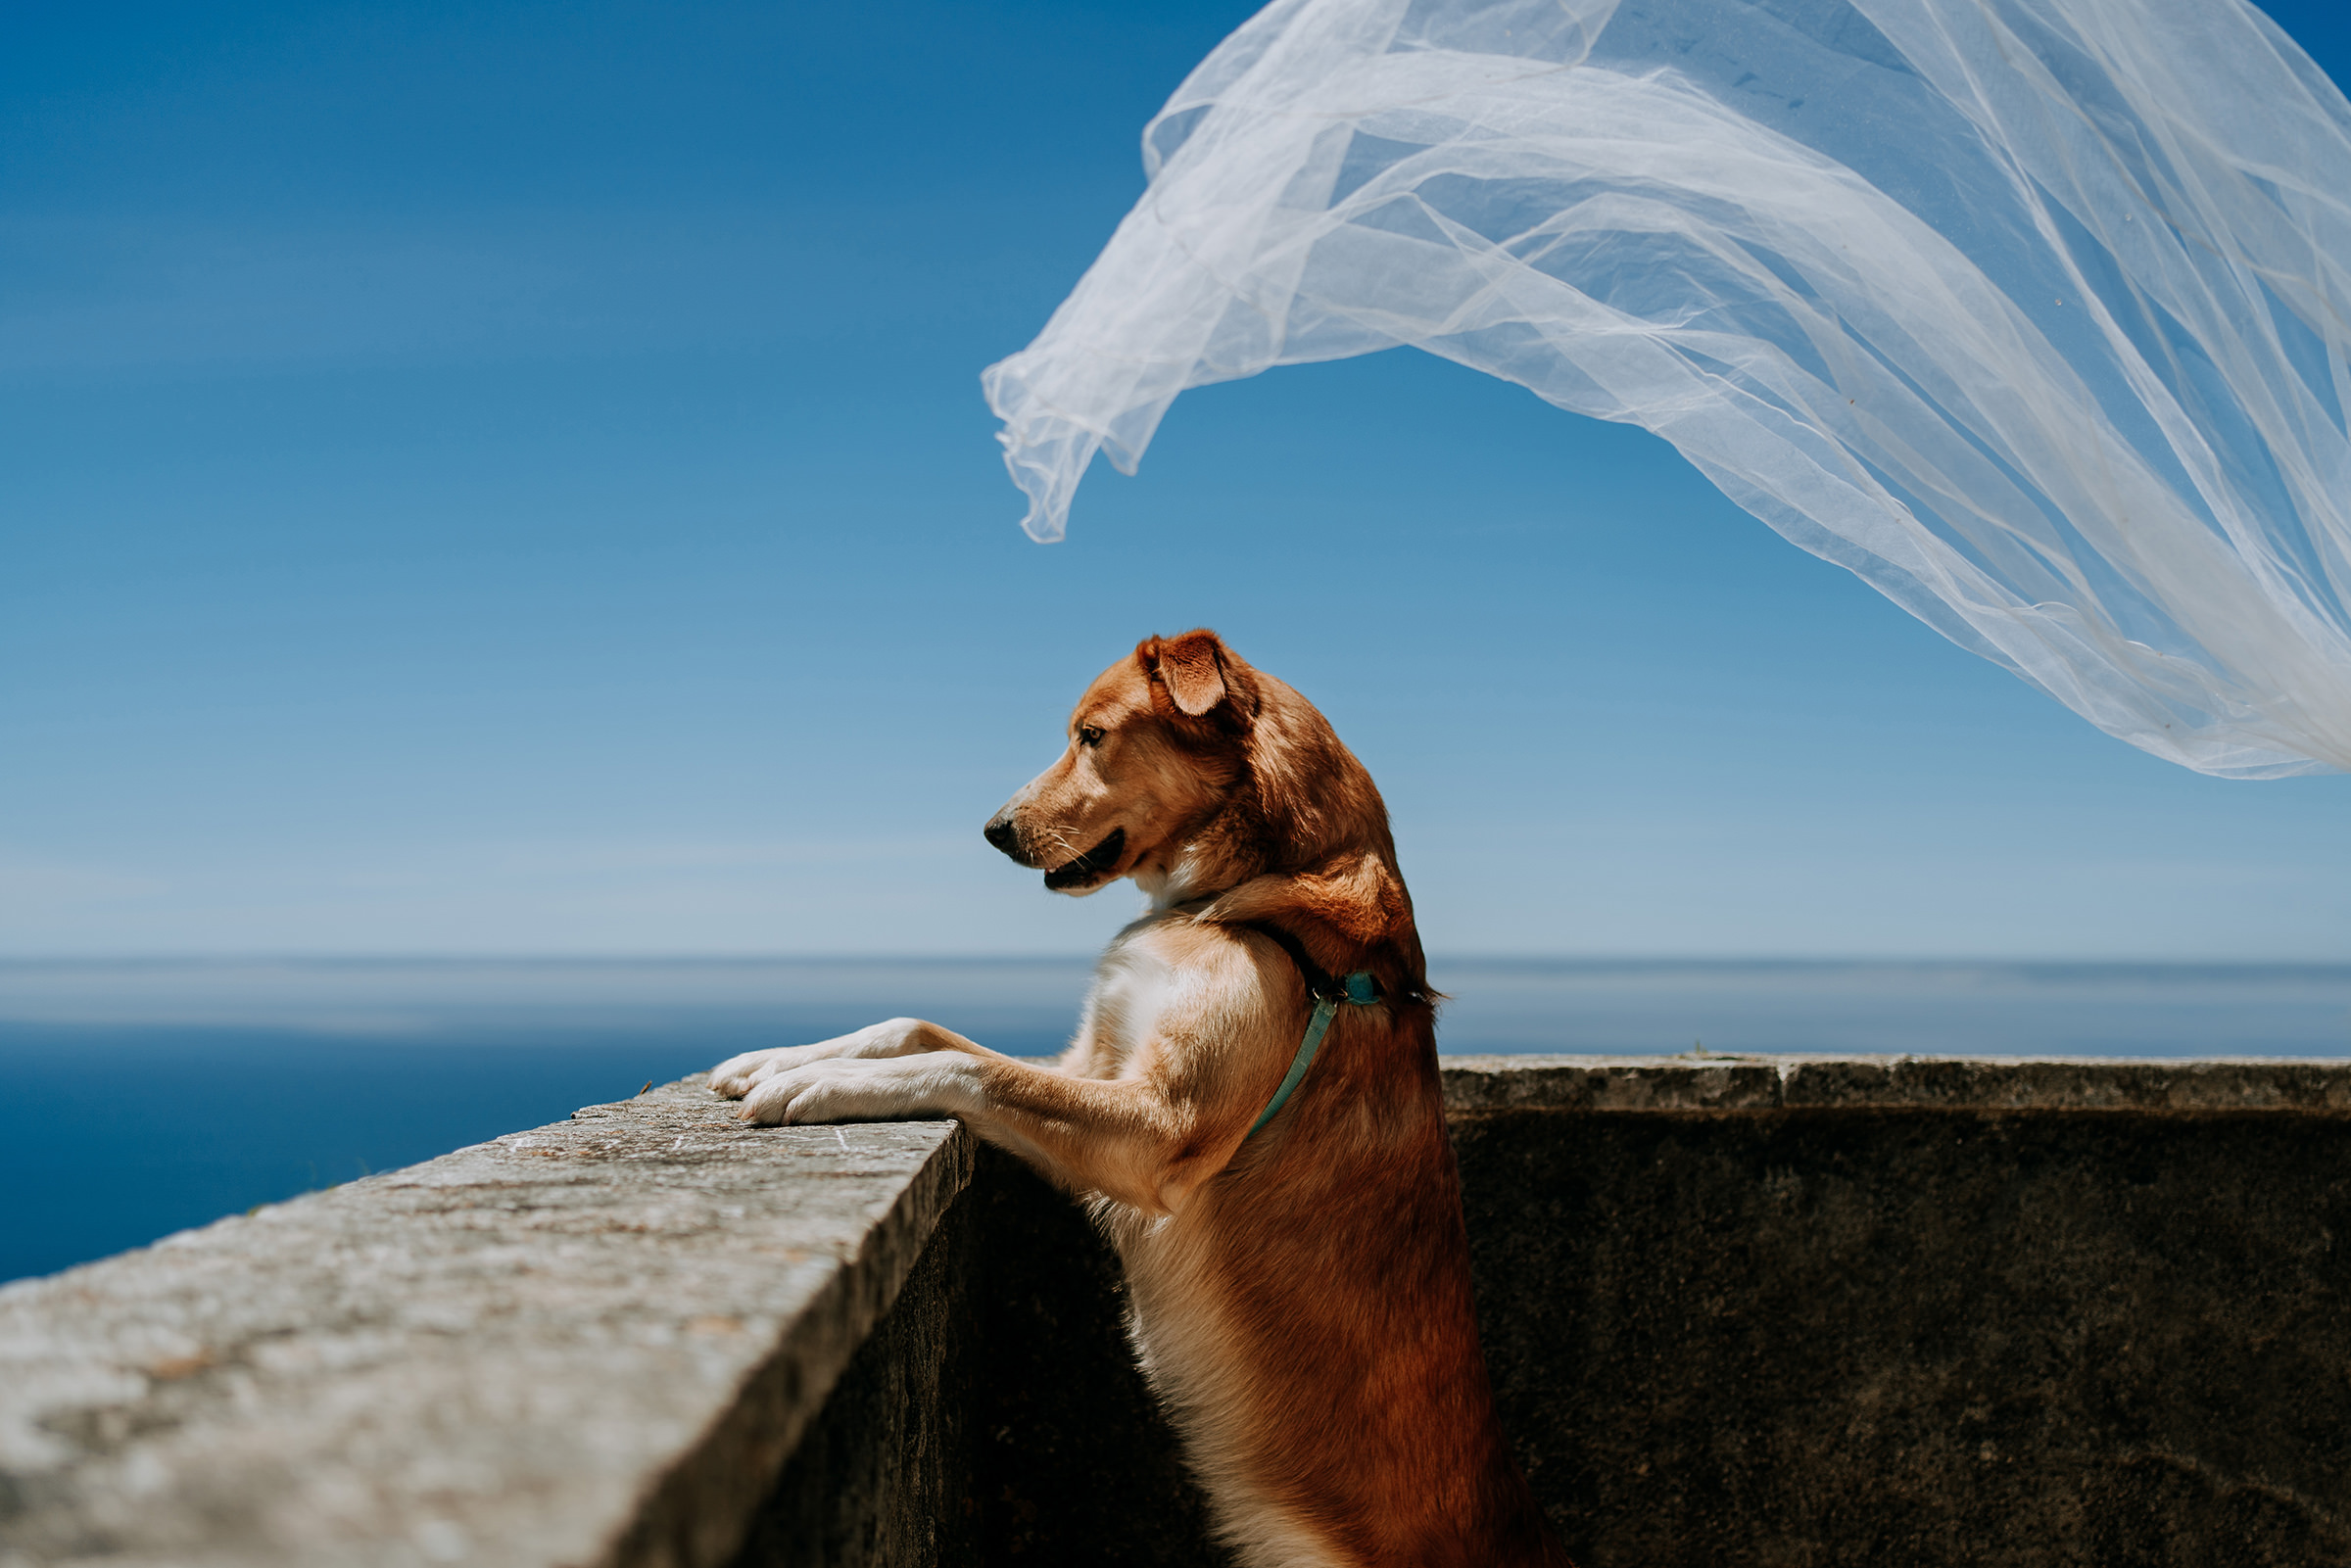 dog-show-fotolux-worlds-best-wedding-photos-dog-and-veil